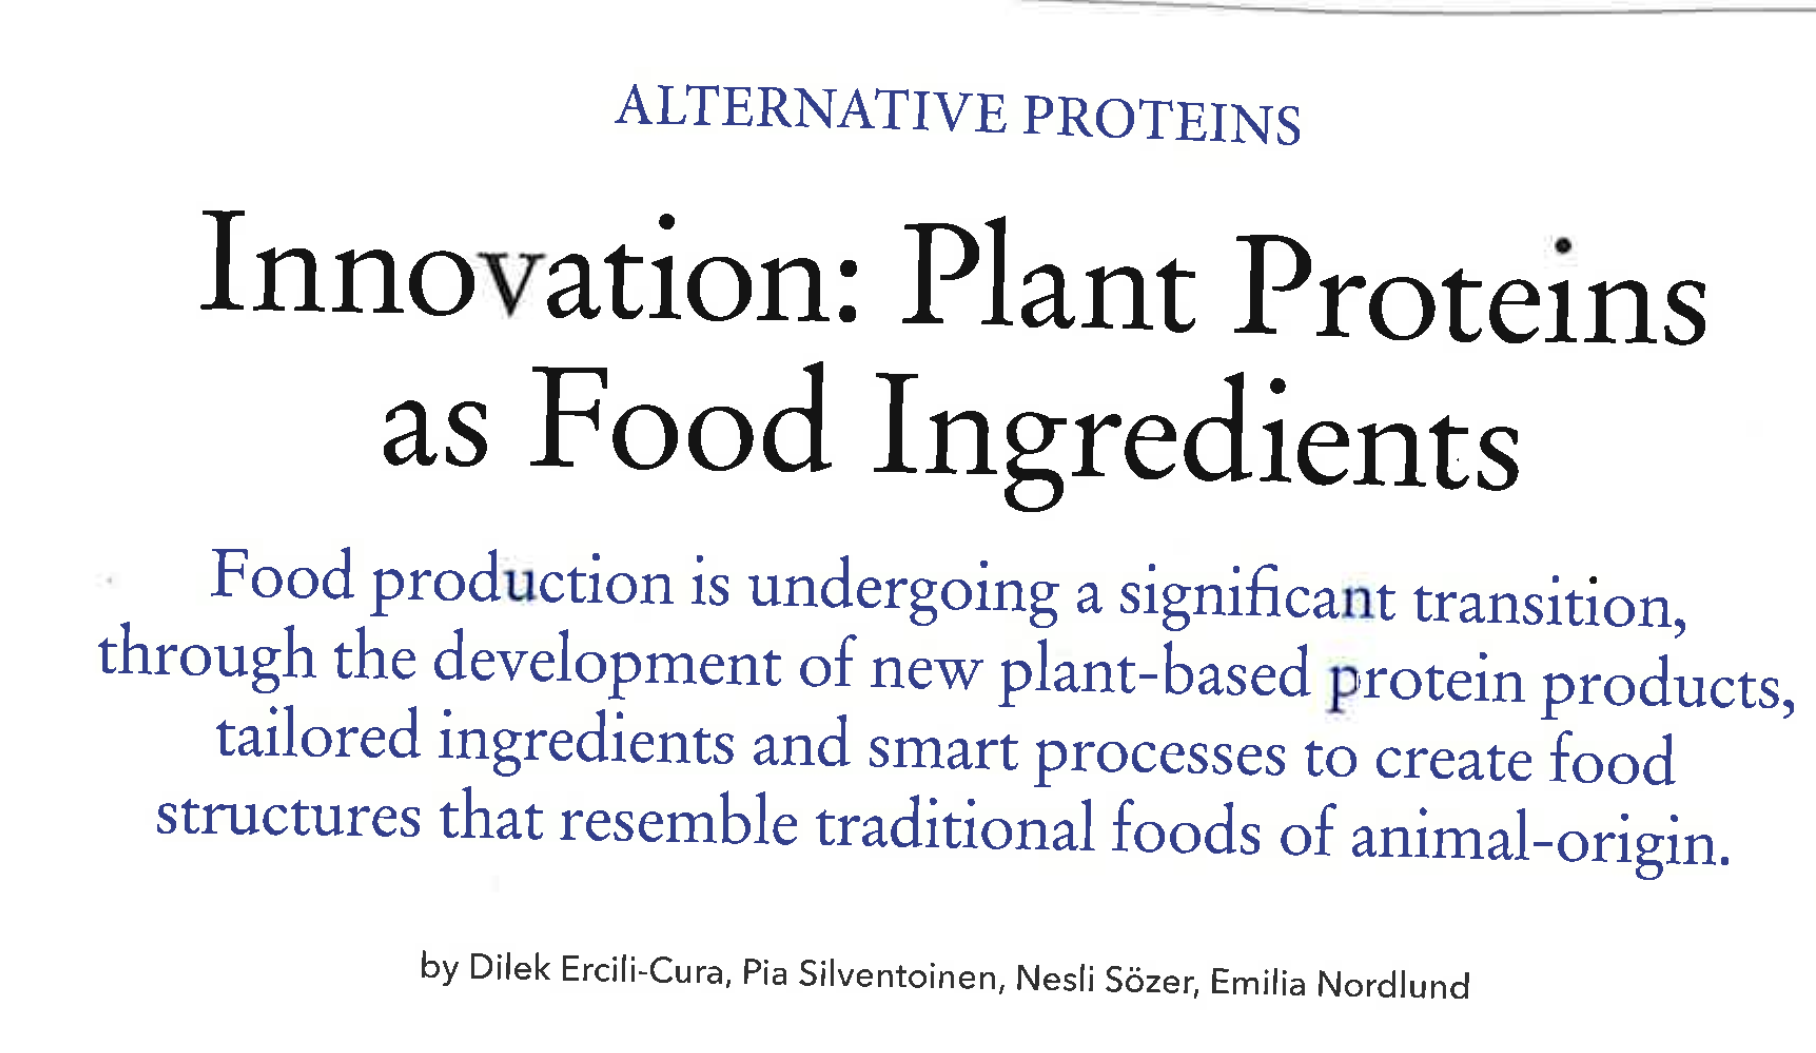 Aug 2018 – Innovation: Plant Proteins As Food Ingredients – The World Of Food Ingredients (March 2018)